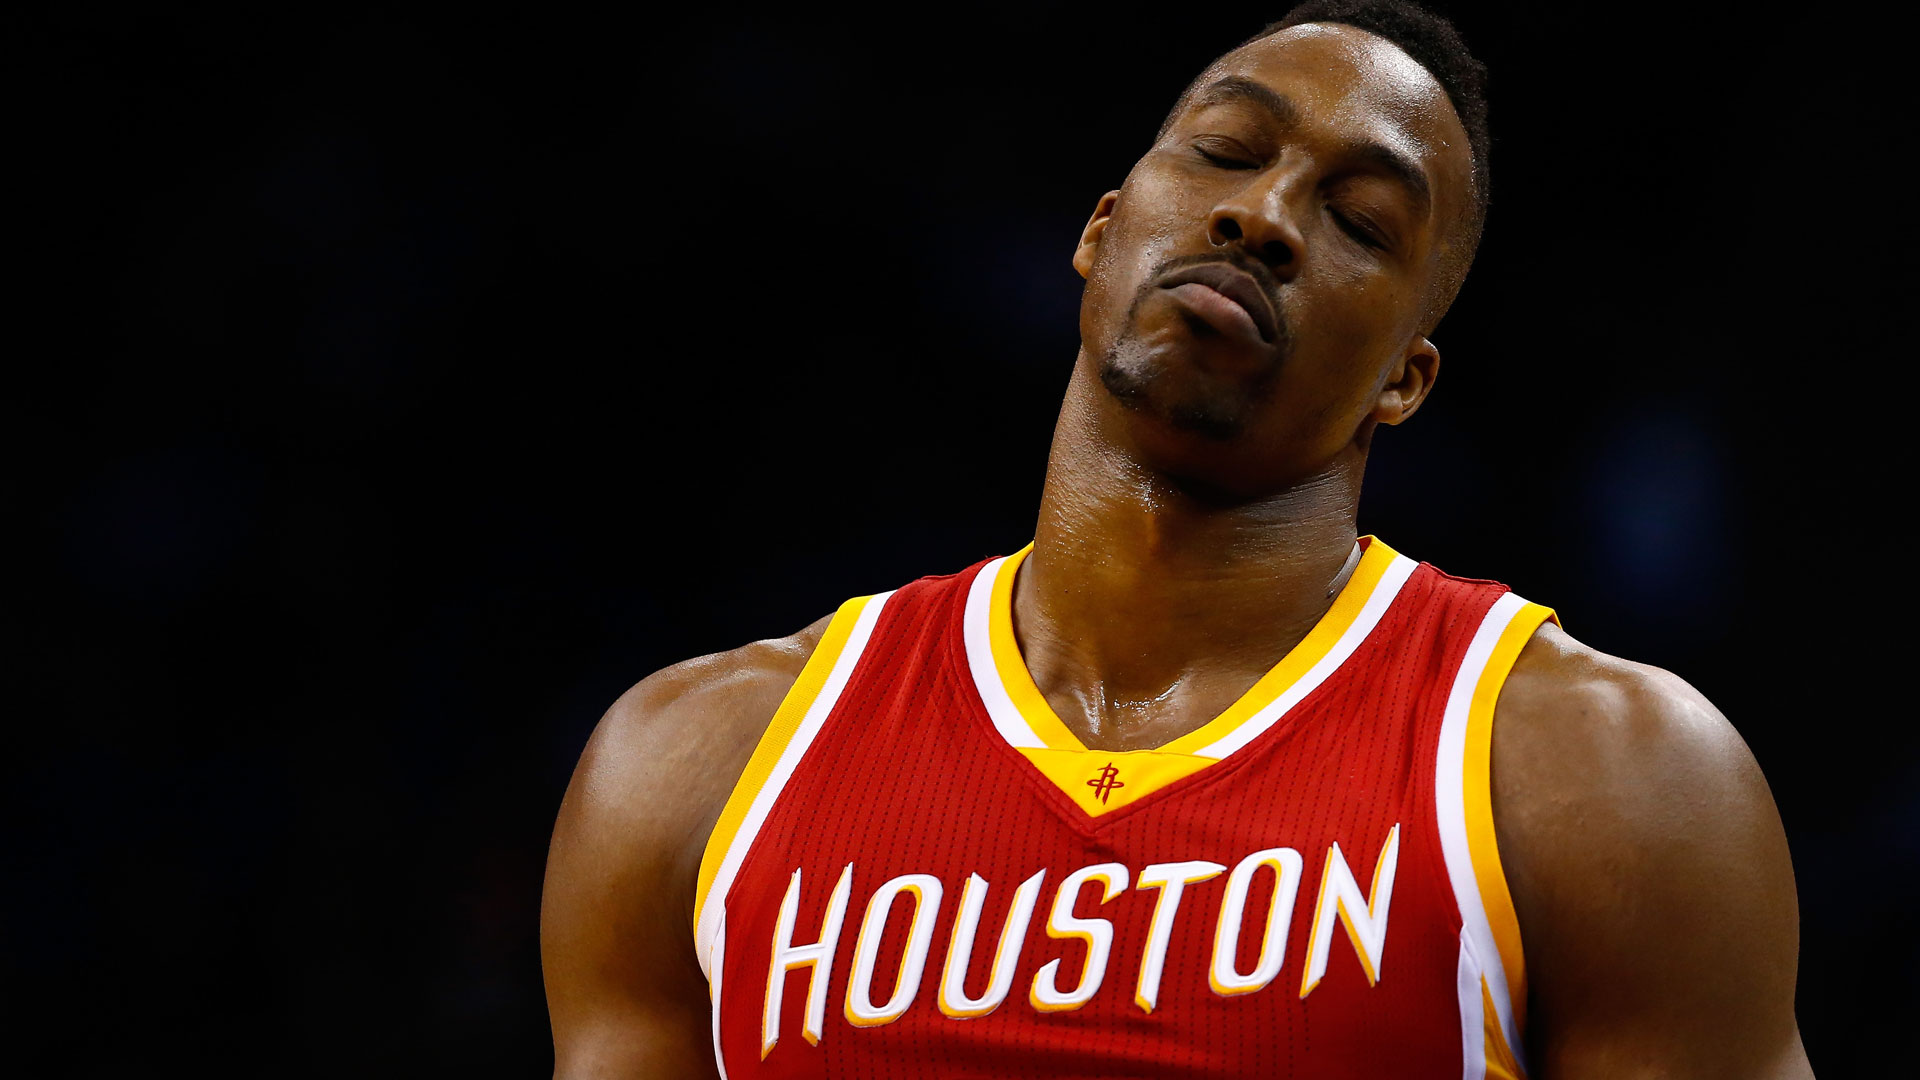 dwight howard 2k14 cyberface